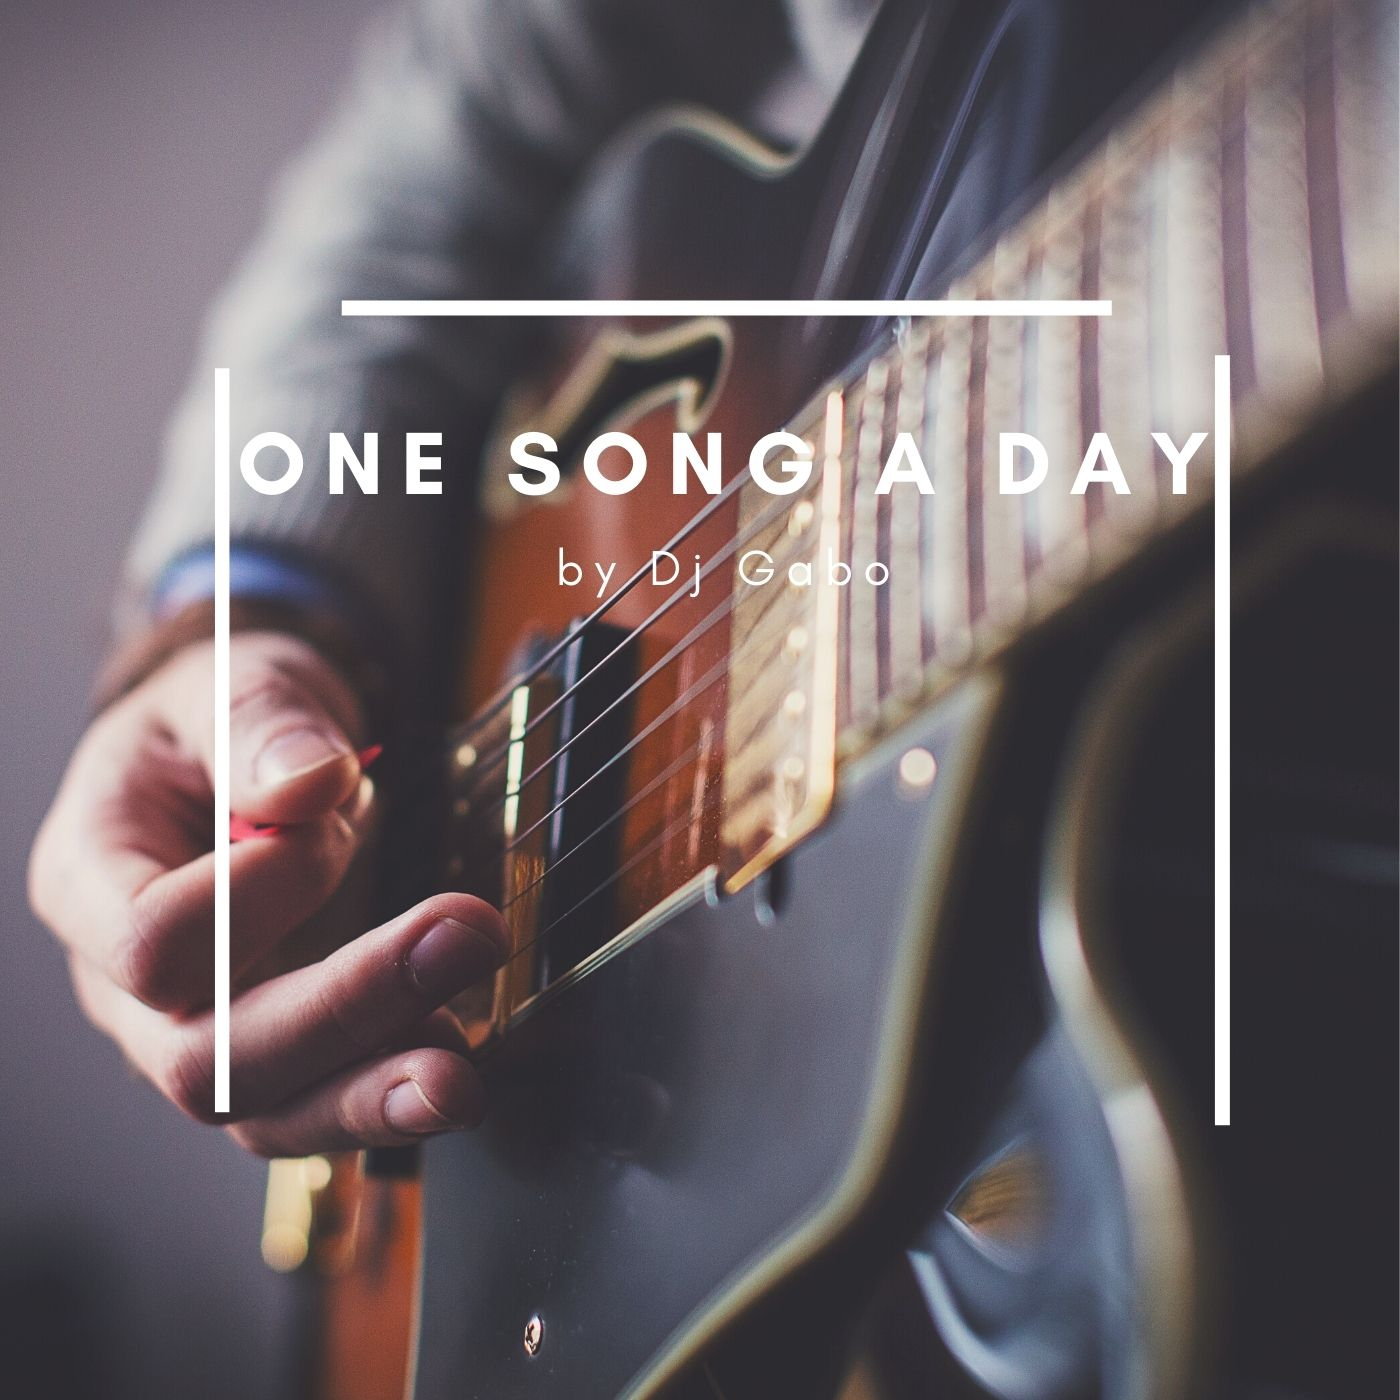 One song a Day